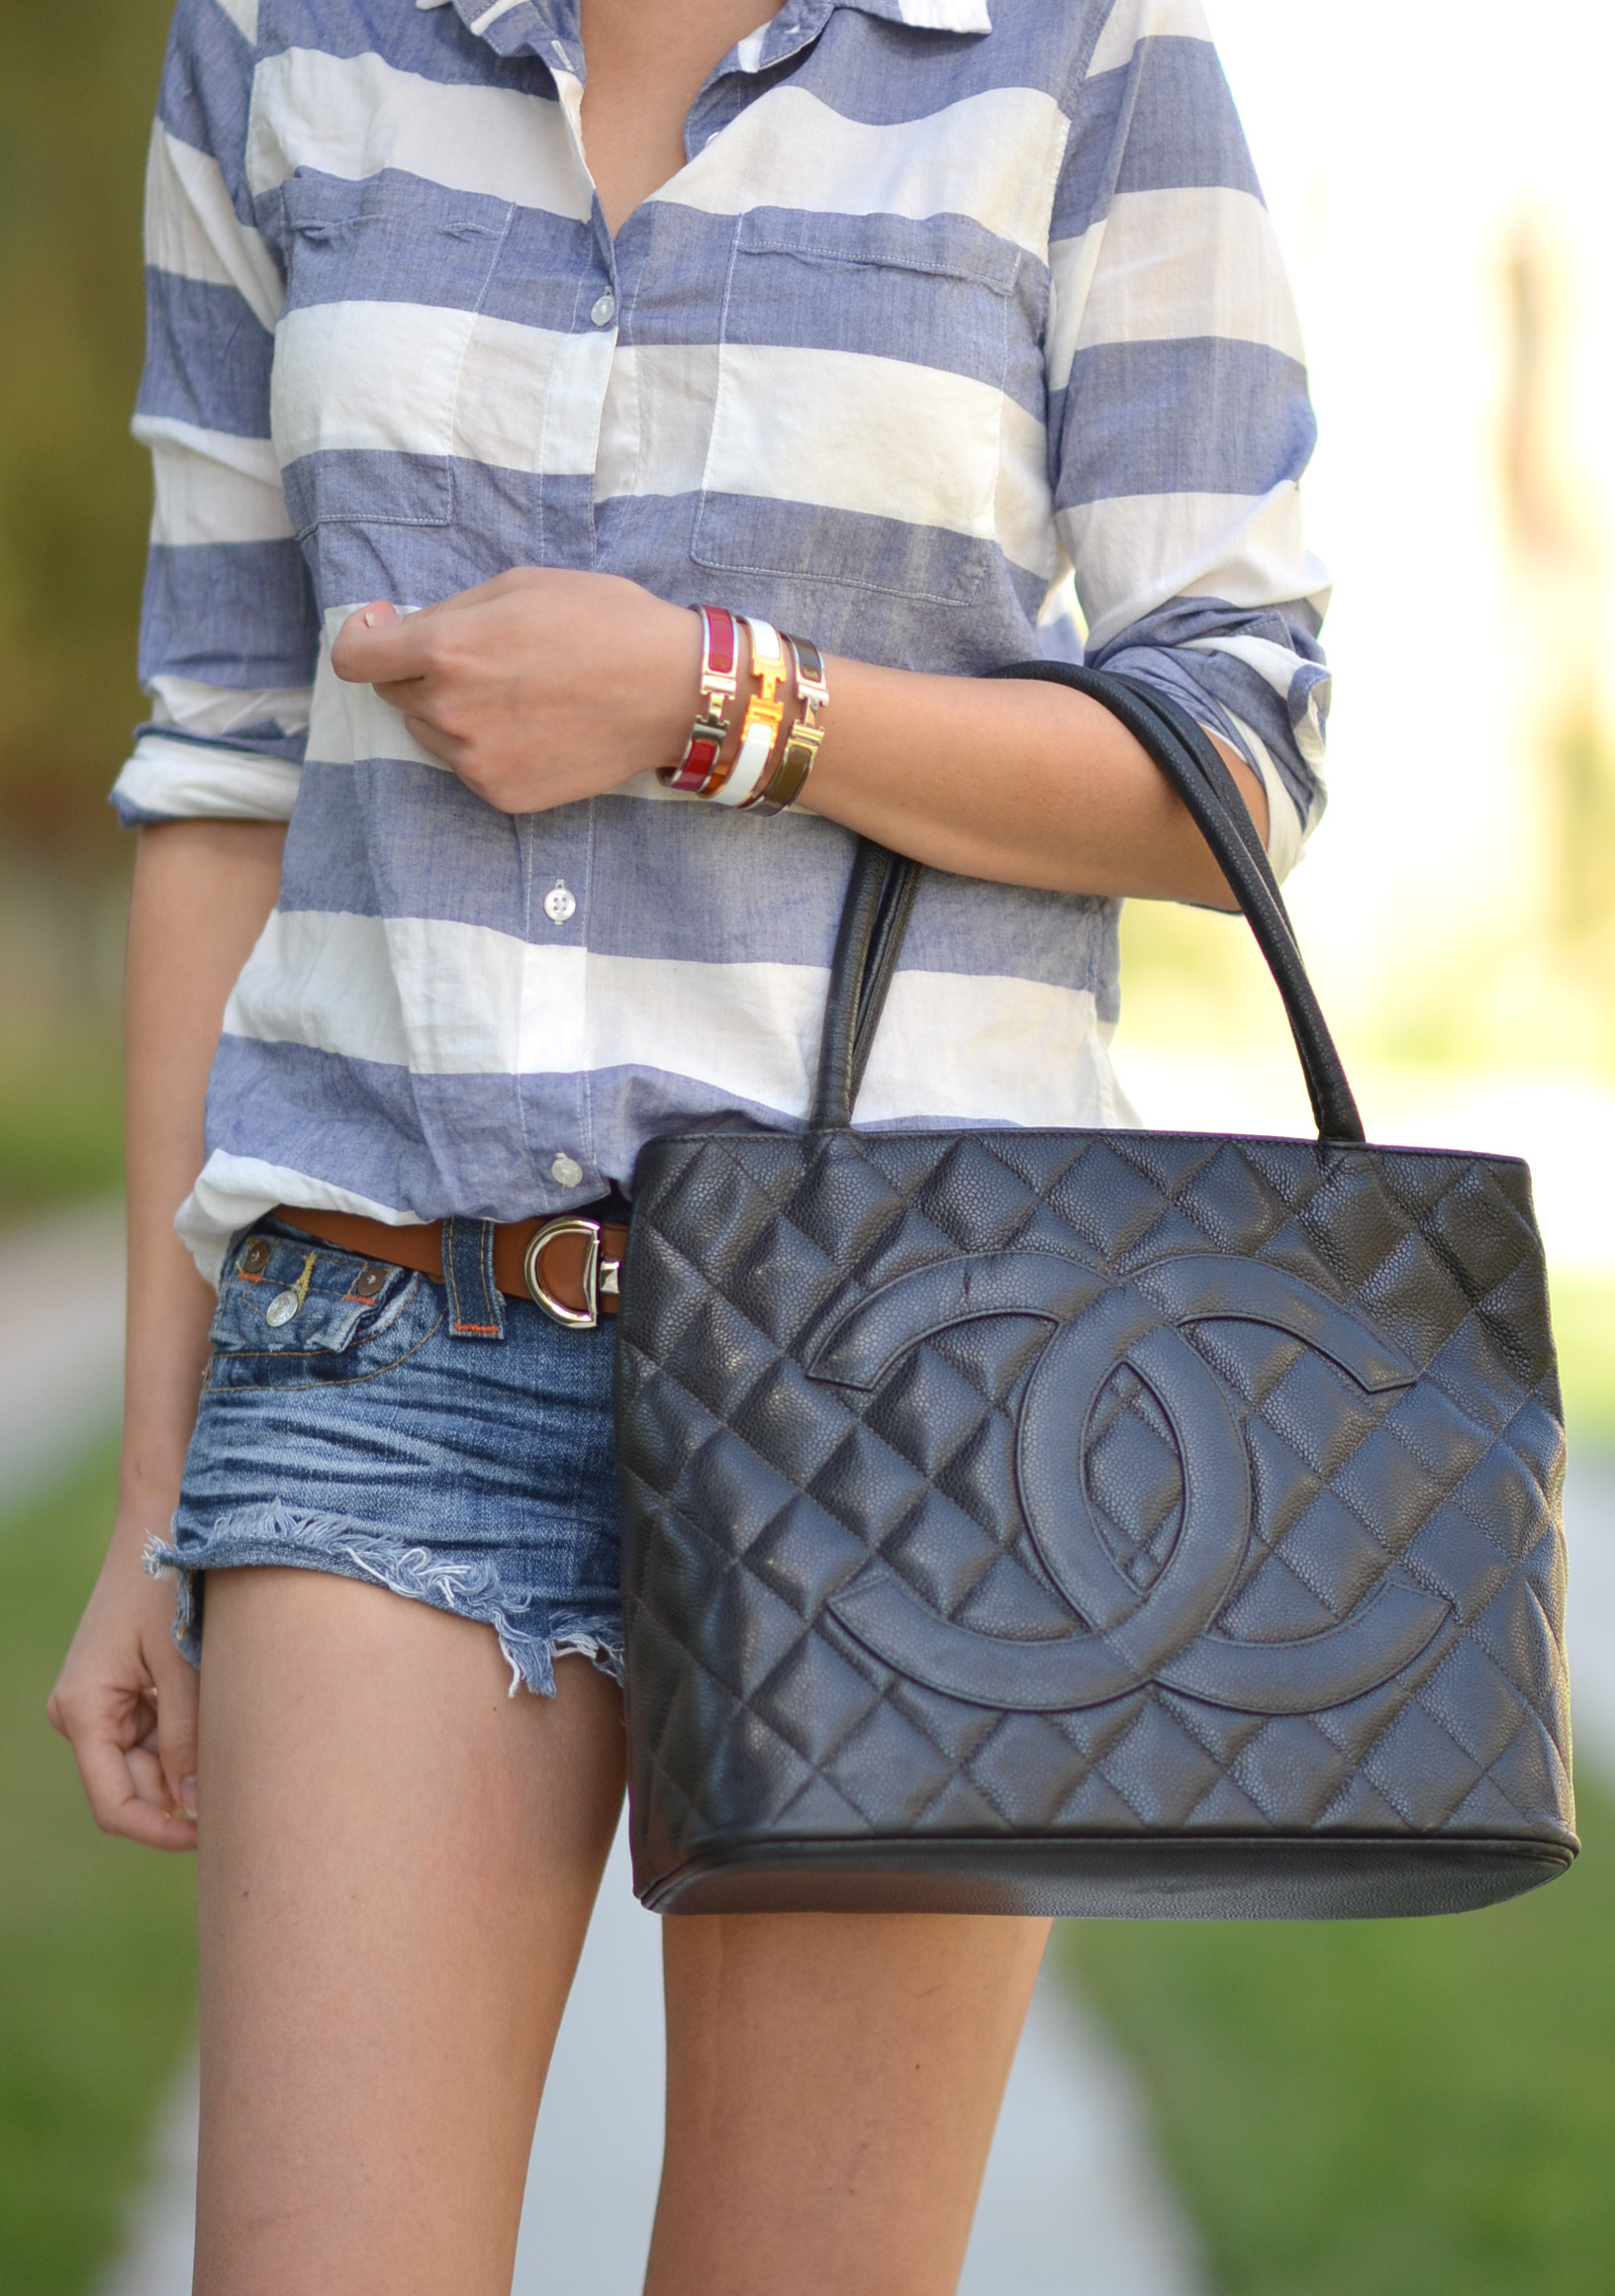 woman person girl wearing Chanel medallion handbag outfit